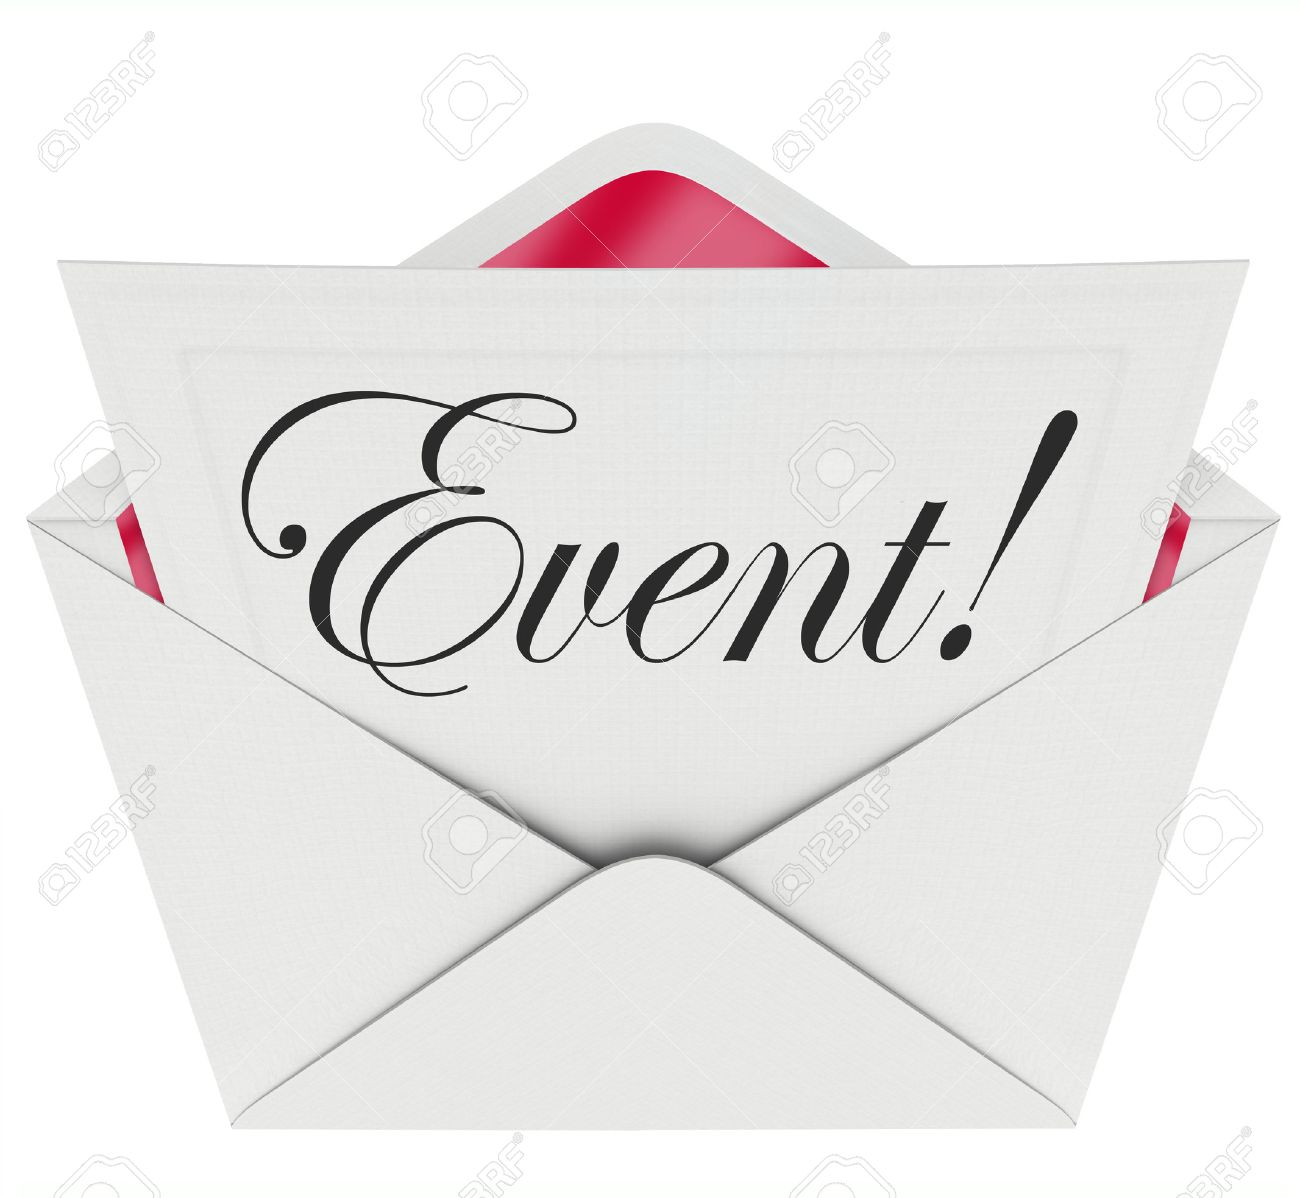 Event Word In Cursive Script Writing On A Formal Invitation Asking ...